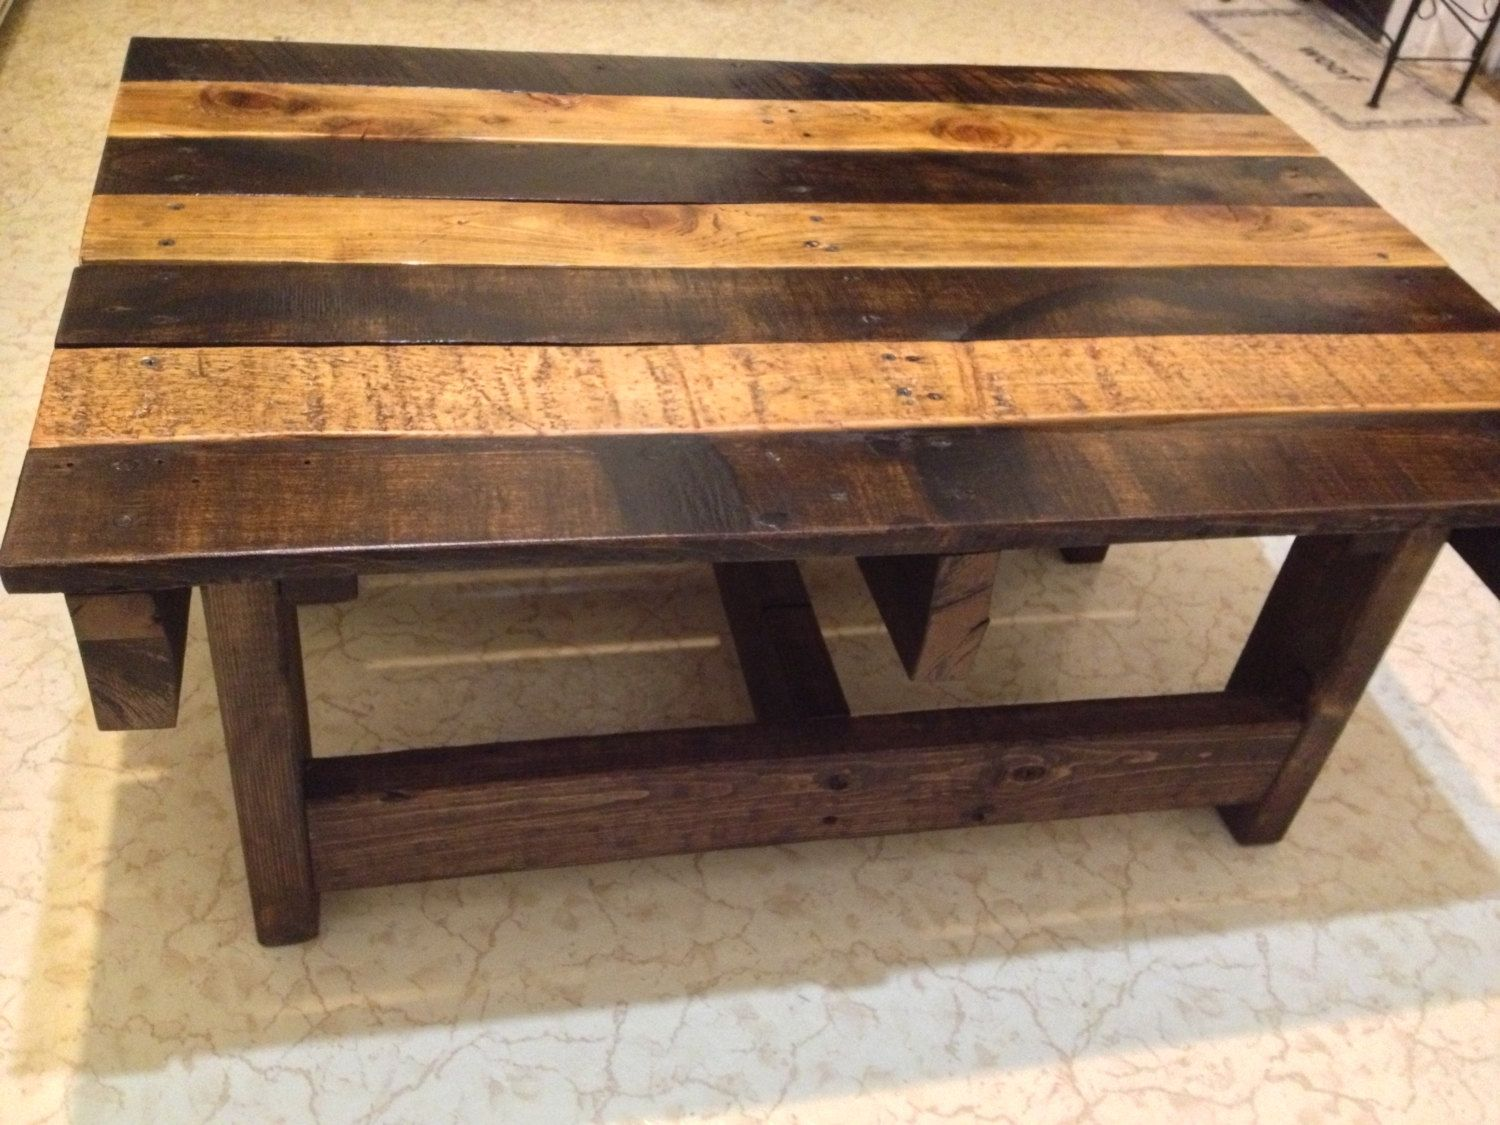 Pallet furniture coffee table - Custom Made Handmade Reclaimed Rustic Pallet Wood Coffee Table